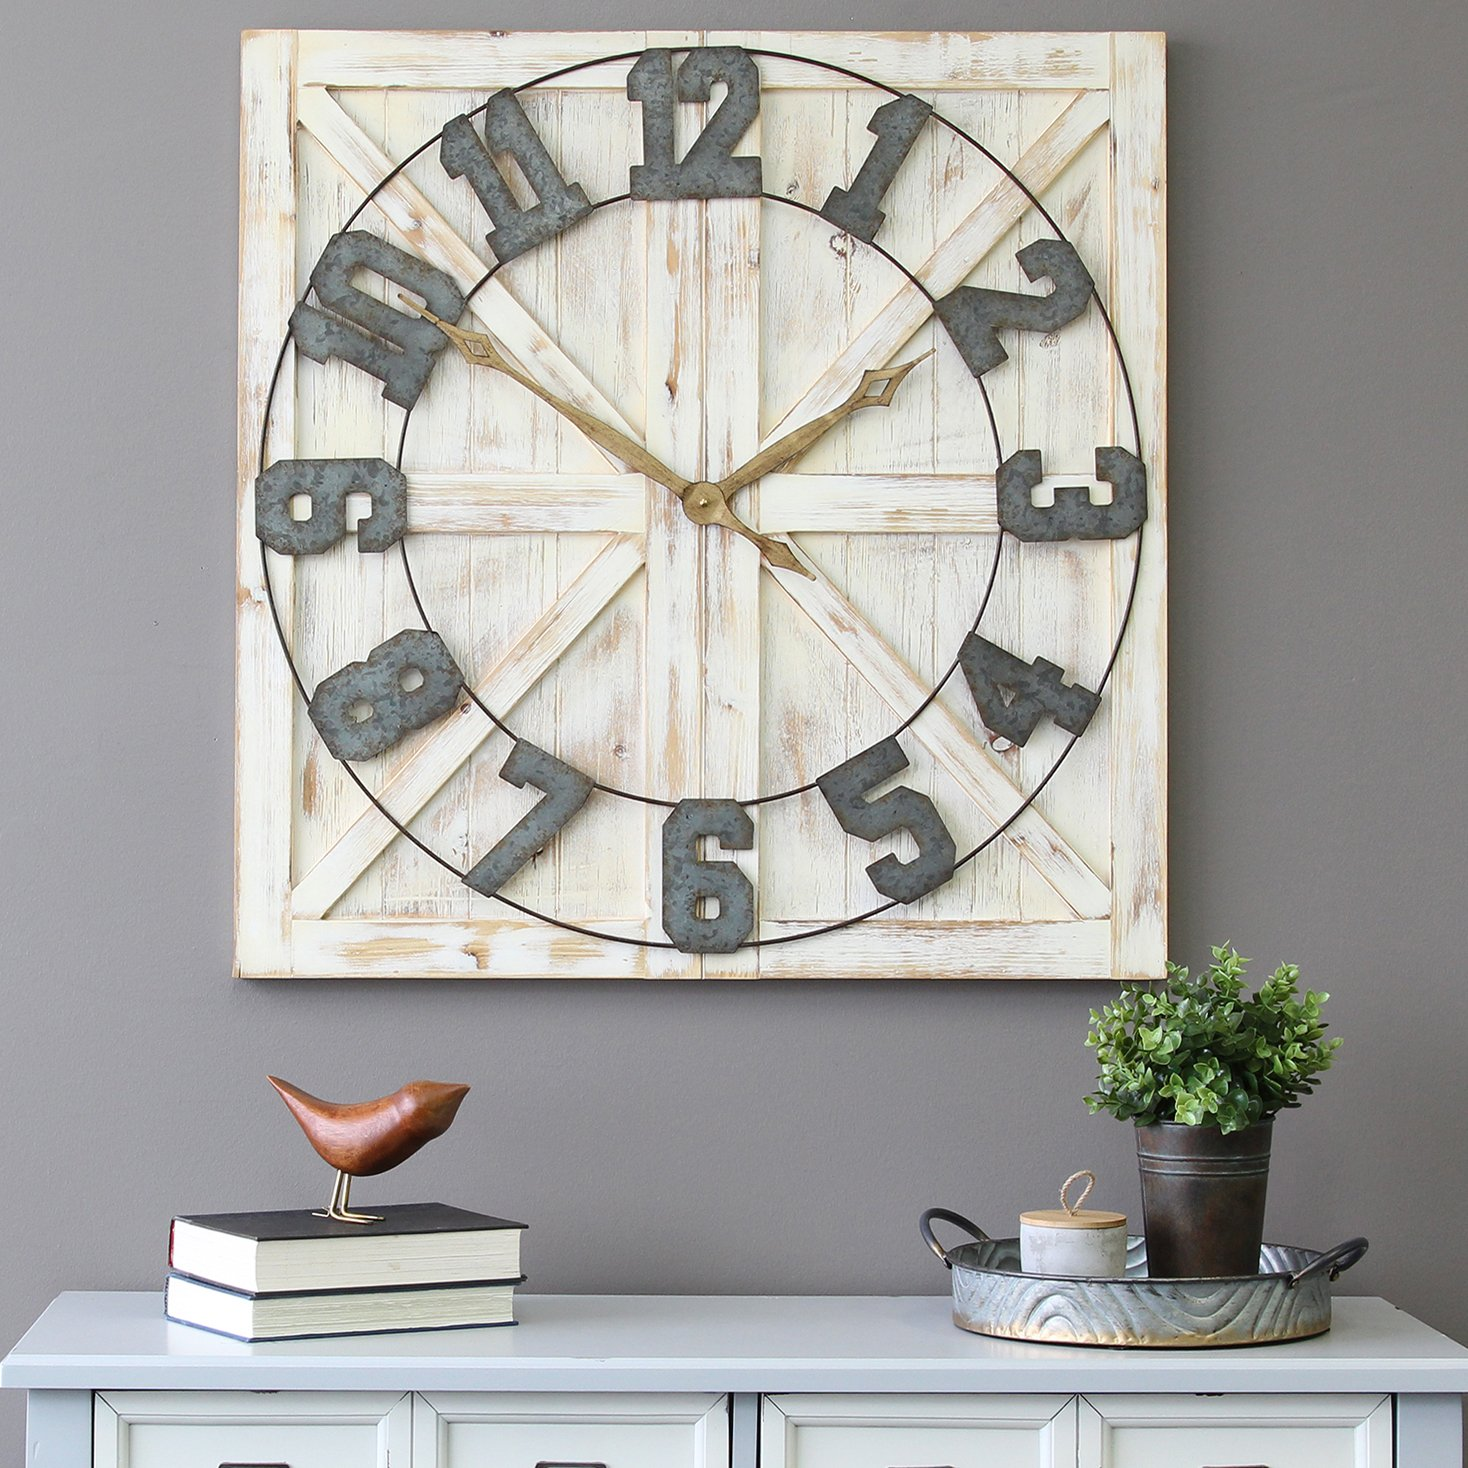 Square Window Wall Clock Distressed White Wood Metal Farmhouse Shabby Chic Decor